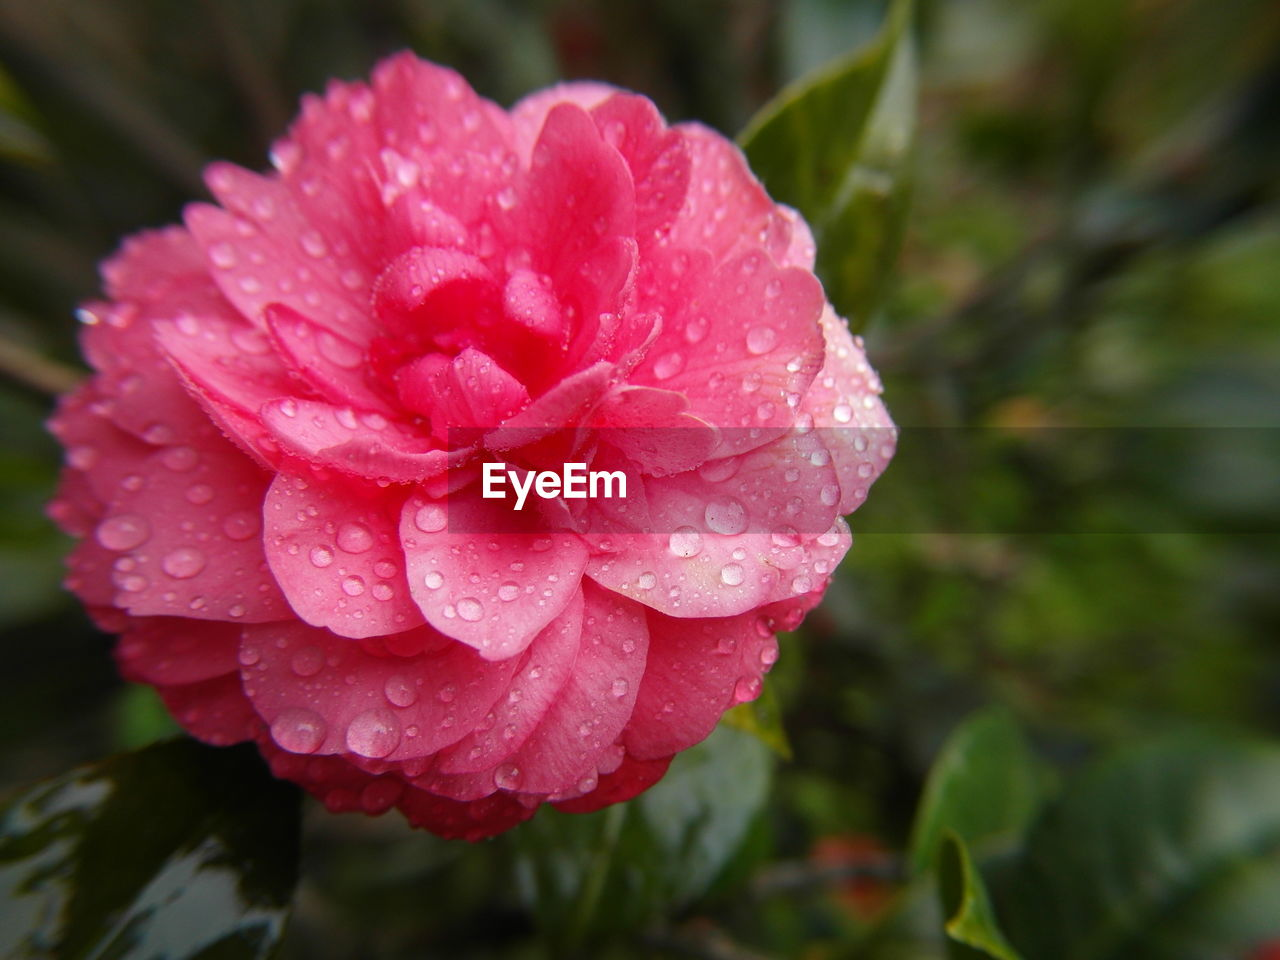 water, drop, wet, nature, flower, beauty in nature, growth, petal, freshness, pink color, fragility, raindrop, no people, day, flower head, blooming, close-up, plant, outdoors, periwinkle